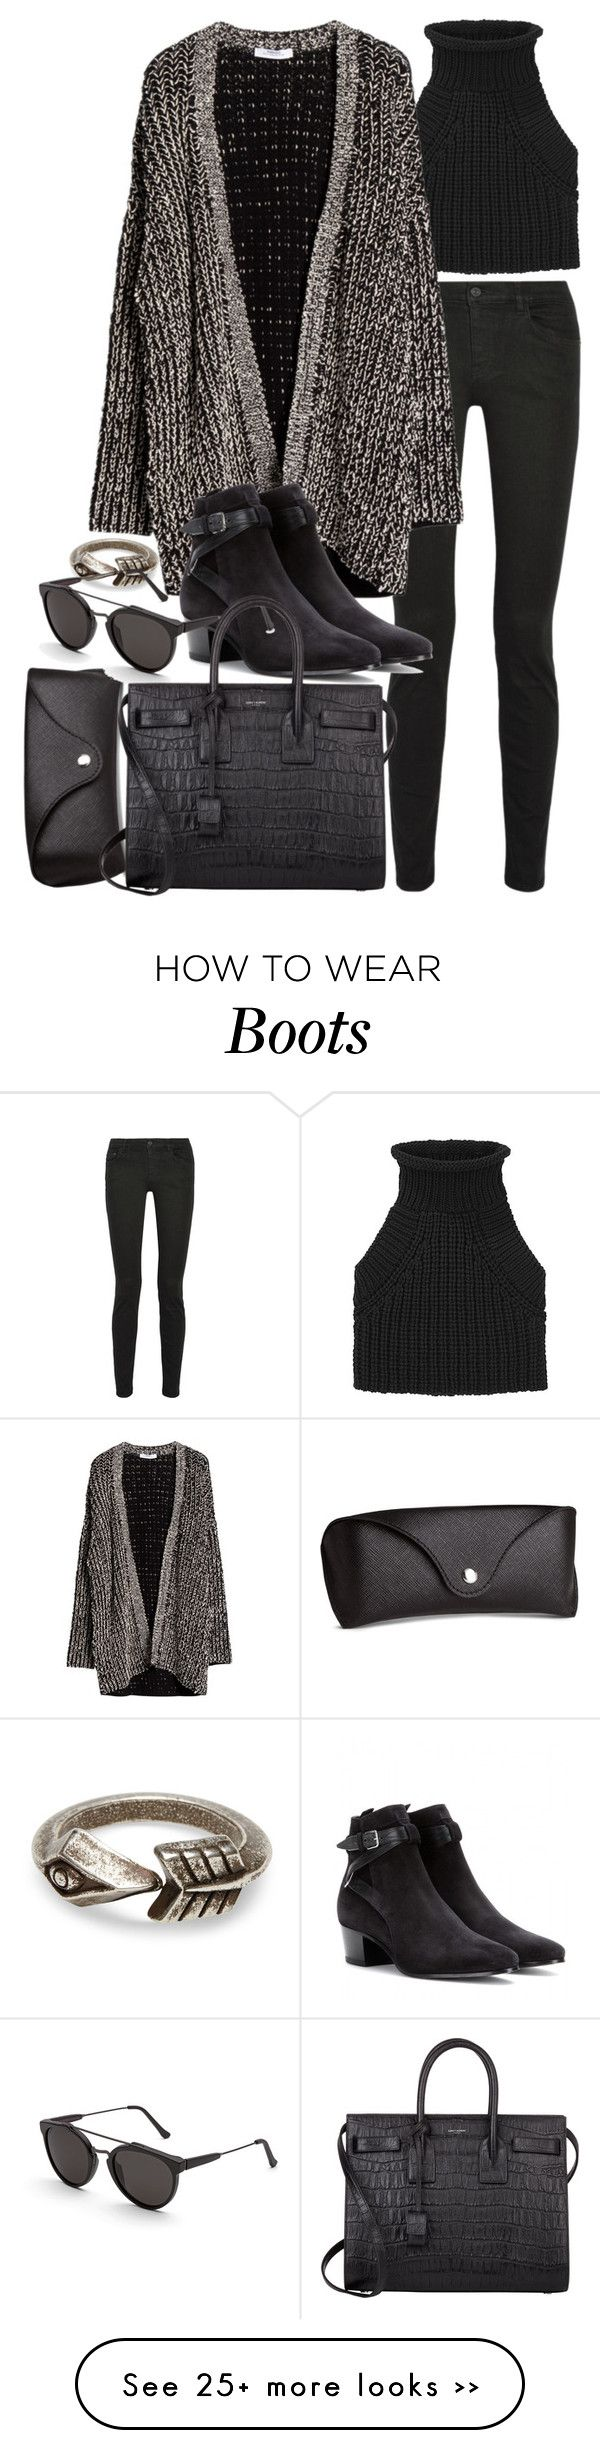 """Untitled #6868"" by nikka-phillips on Polyvore"